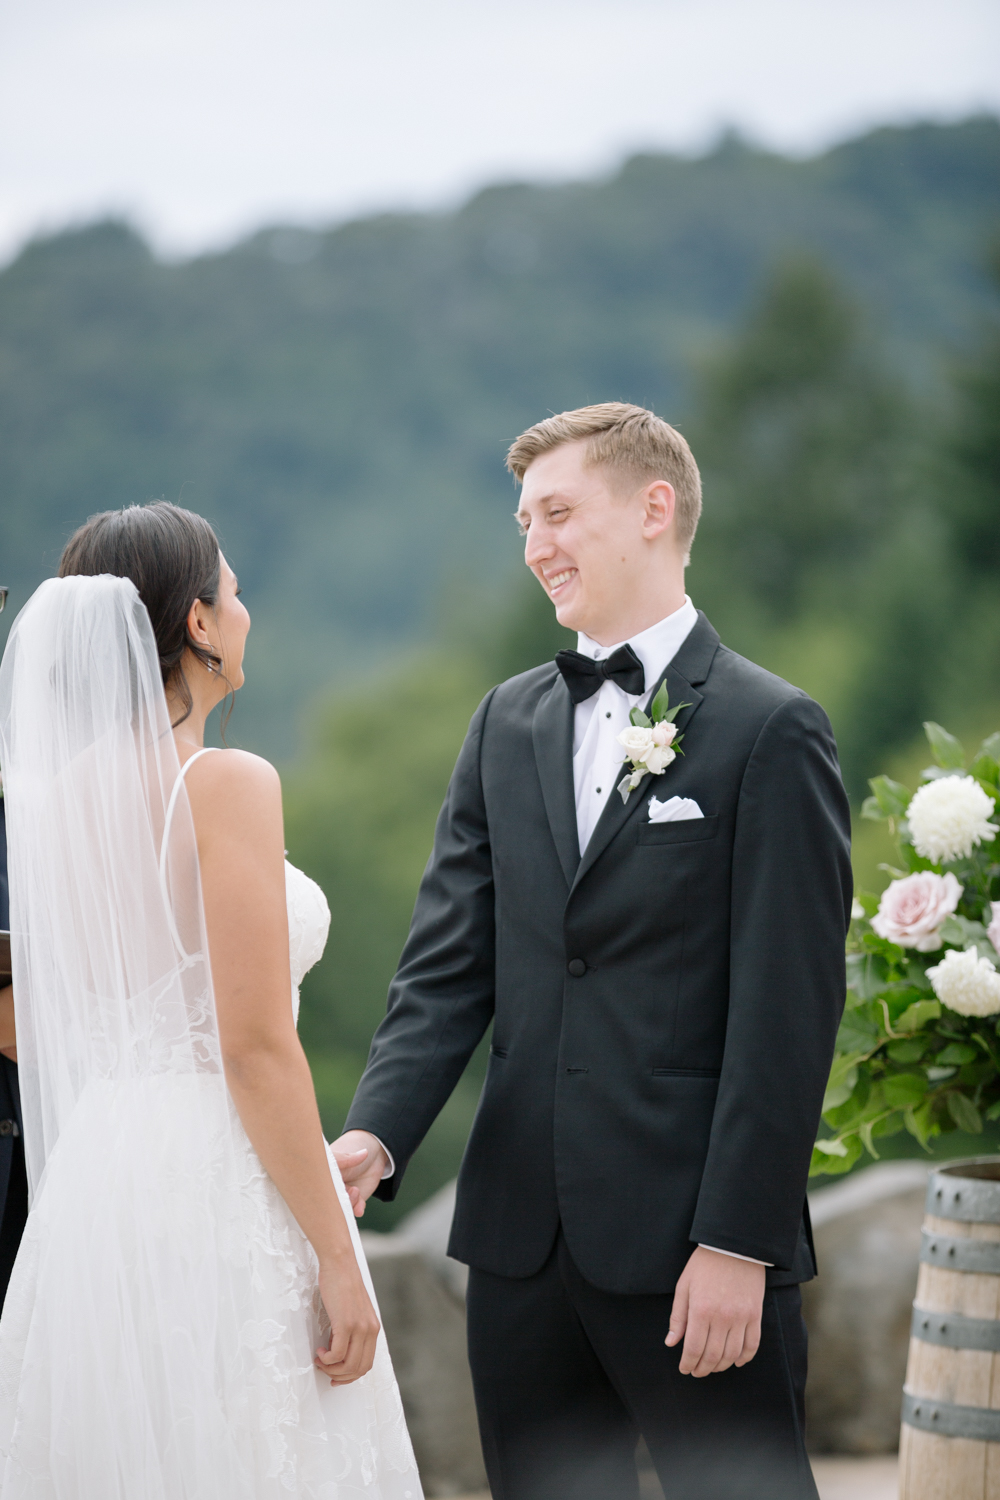 Youngberg Hill Vineyard Wedding in Wine Country Oregon - Corrie Mick Photography-291.jpg